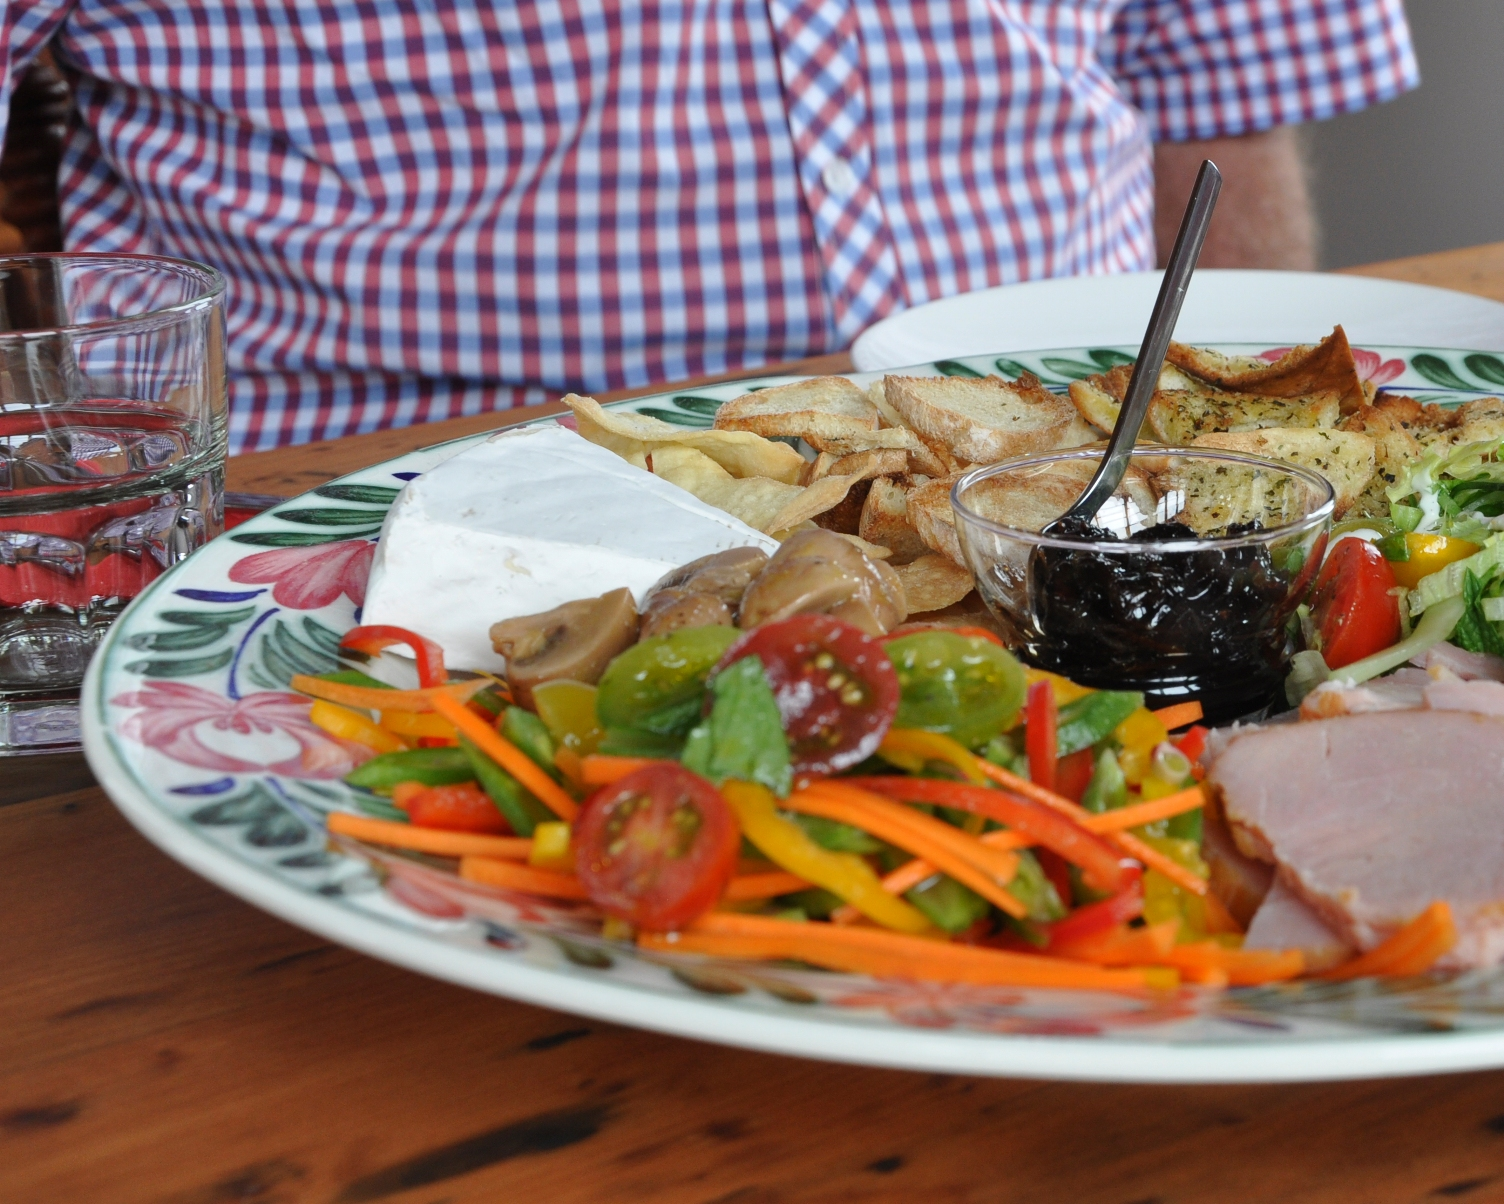 Farm-style platter from de la terre's cafe